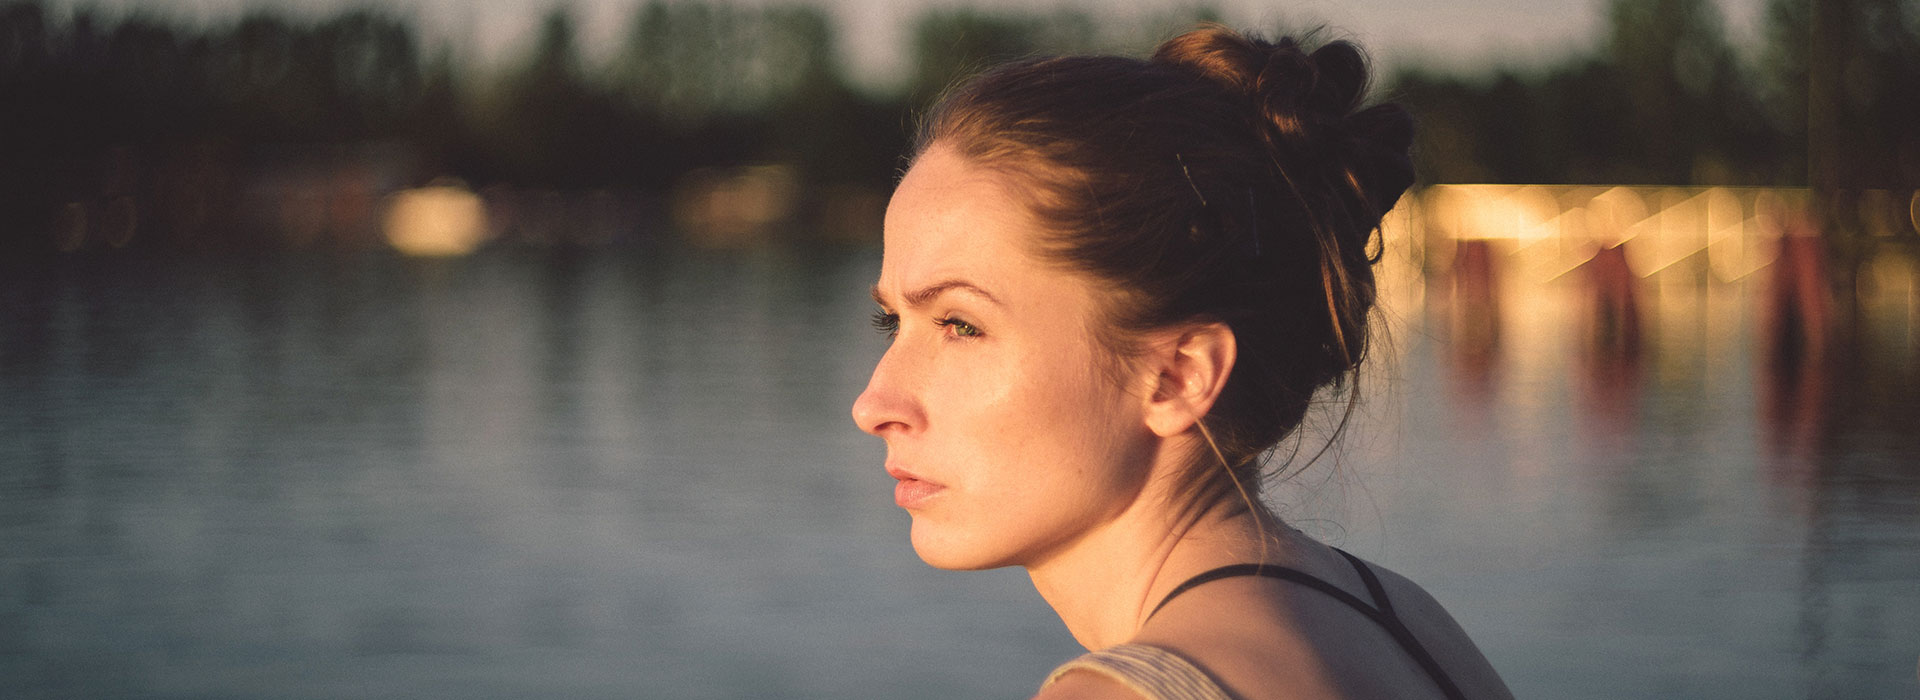 A side profile of a young woman looking pensively out towards the water.